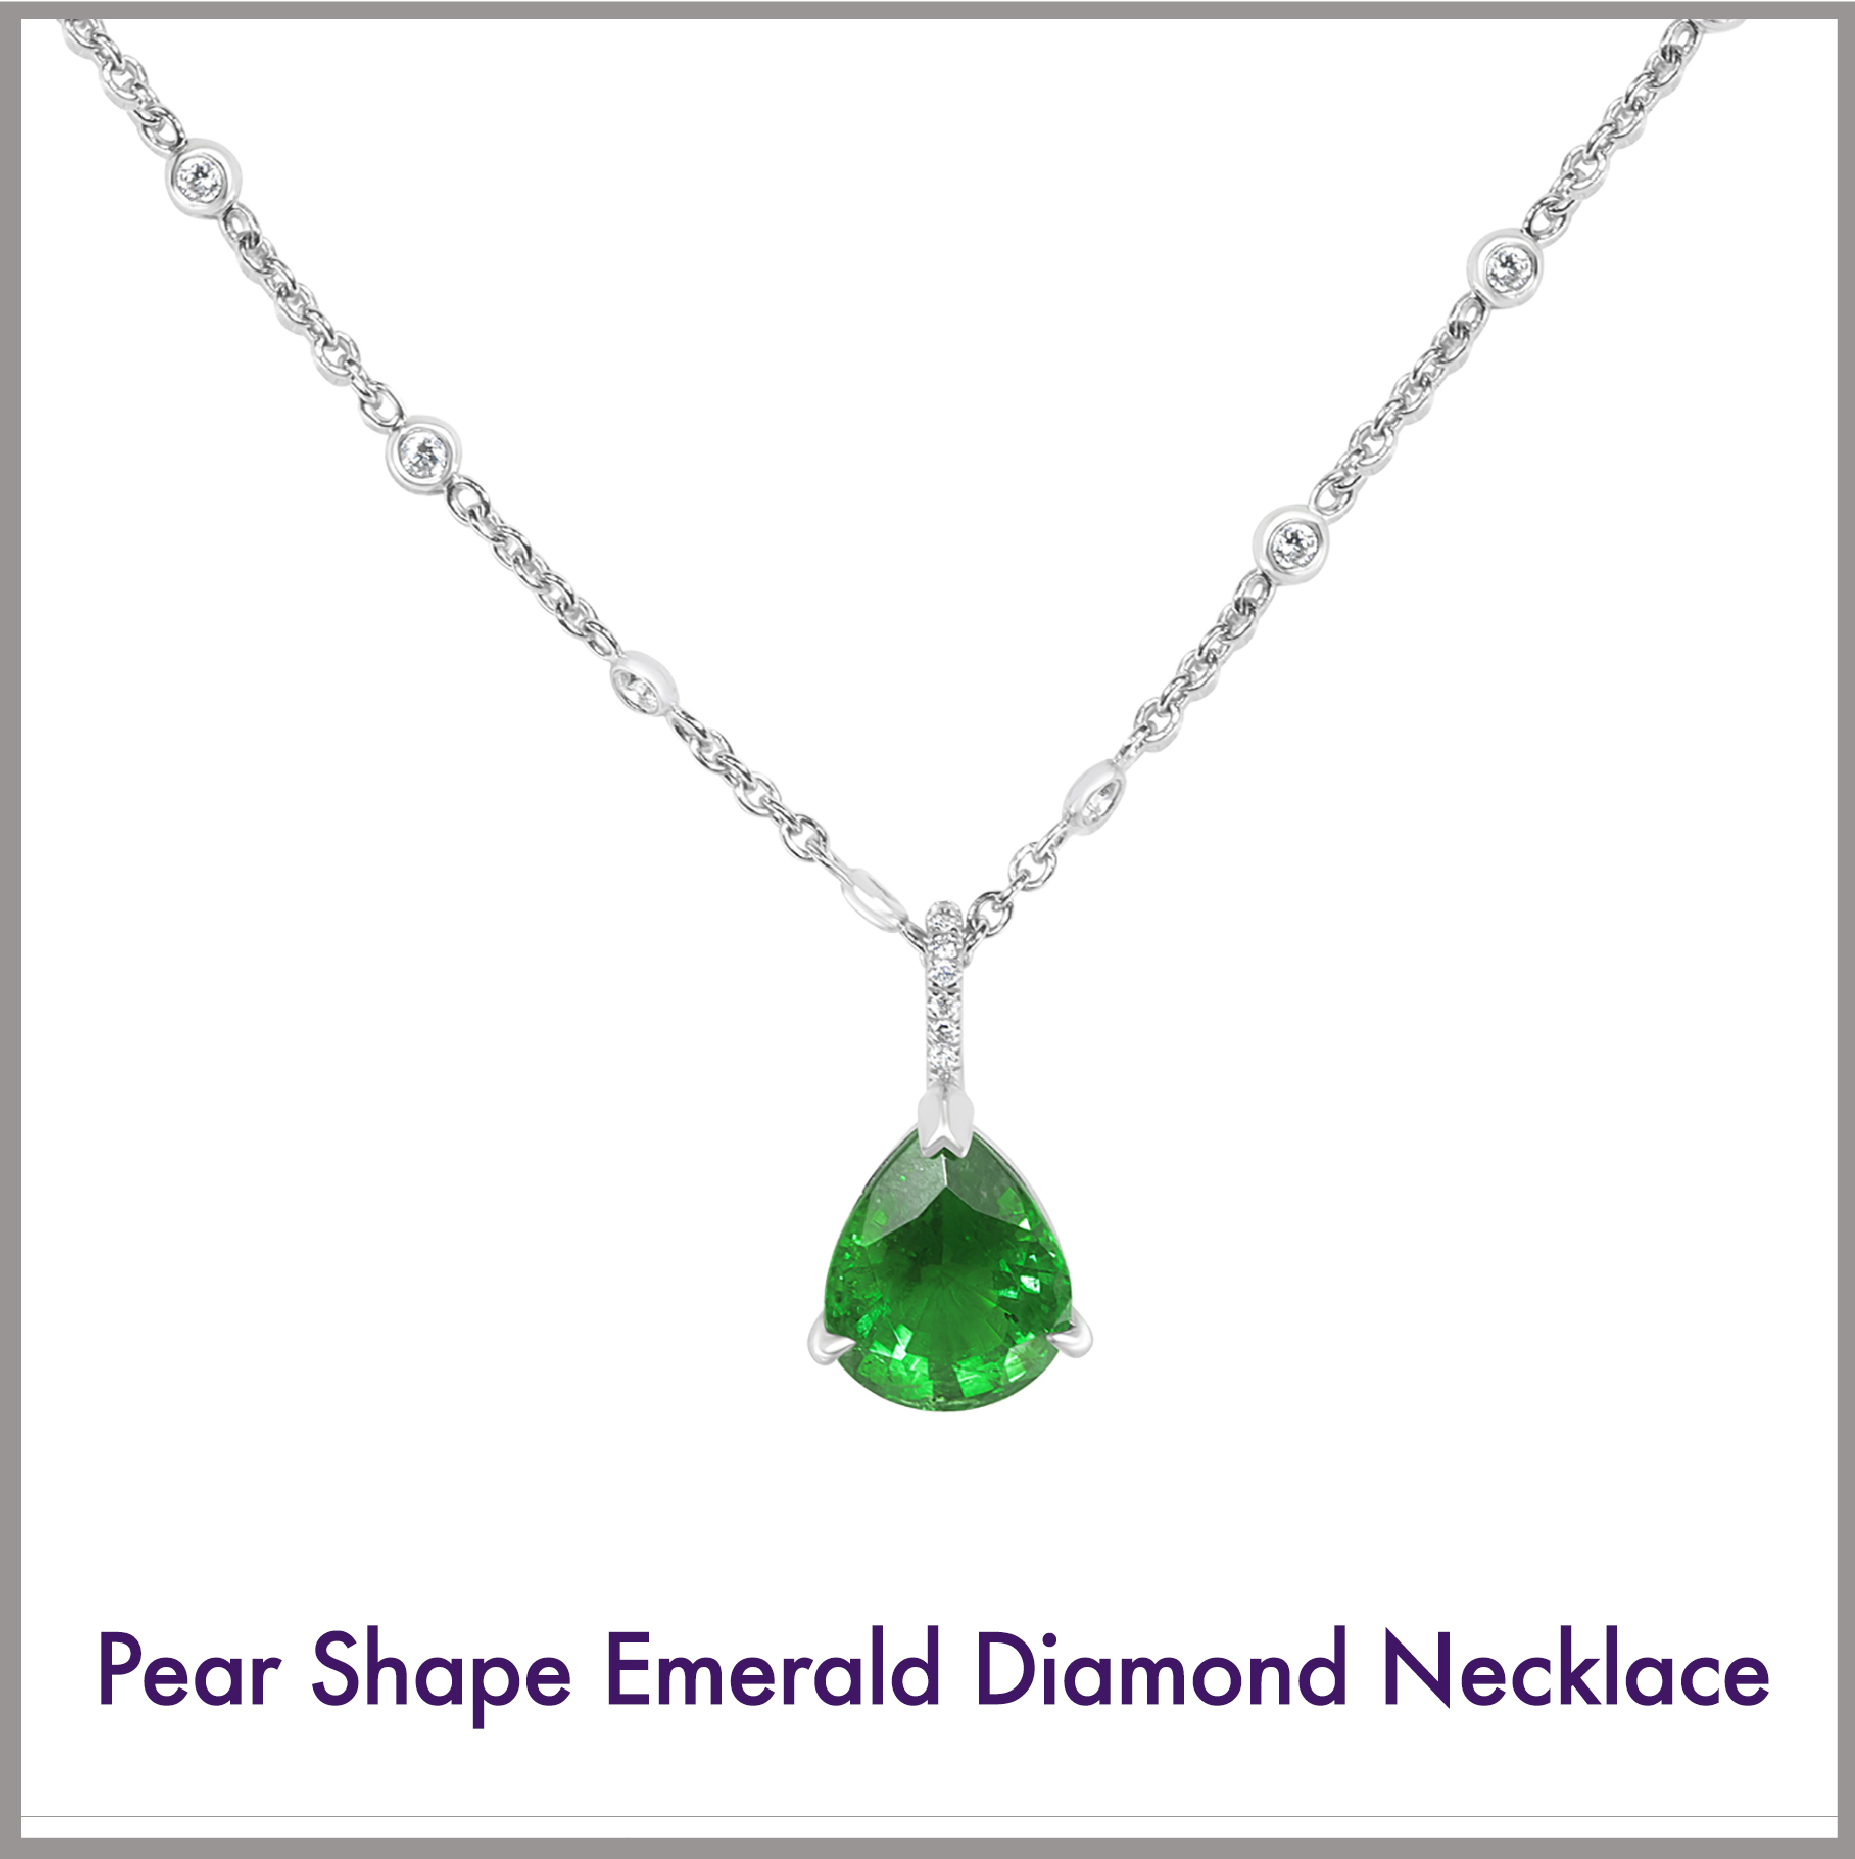 Pear Shape Emerald and Diamond Necklace